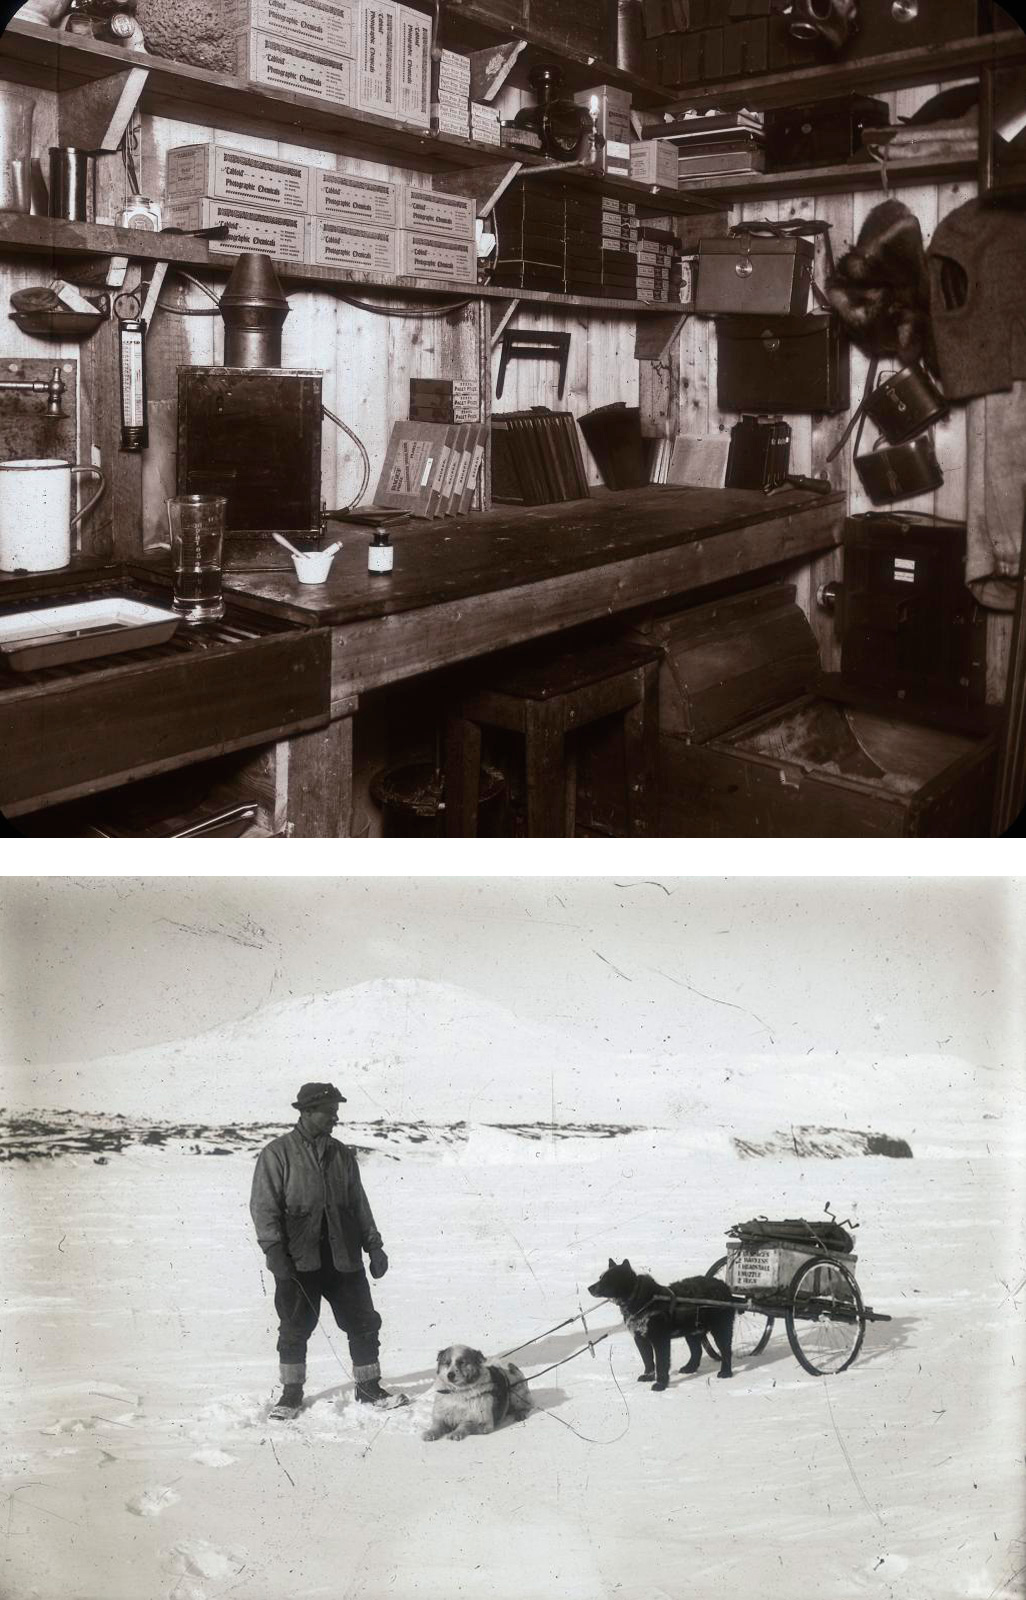 British Antarctic Expedition, 1910-13